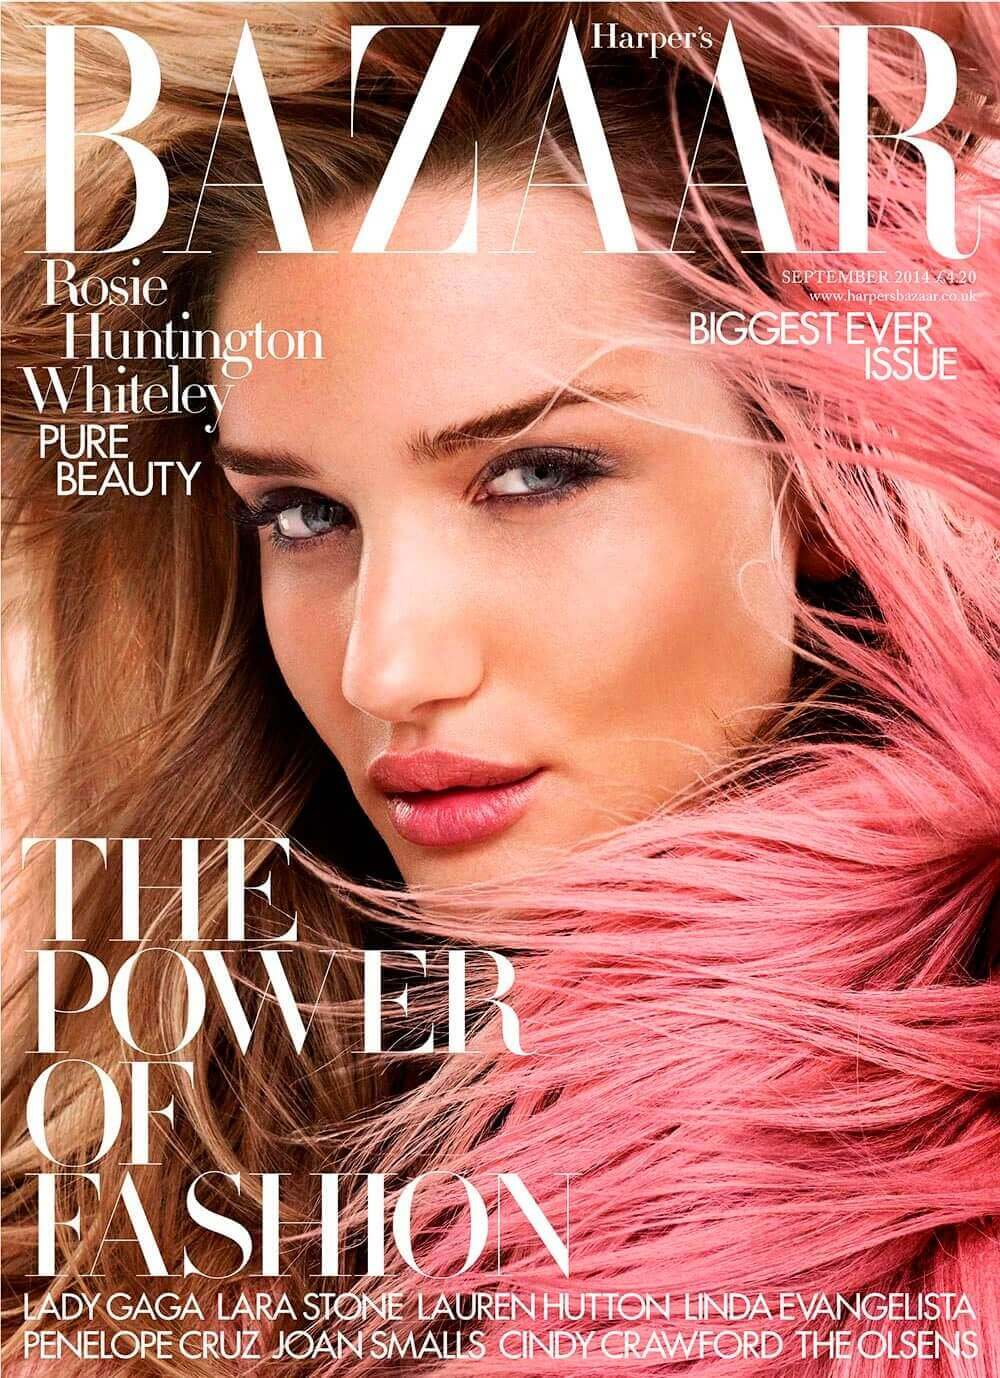 Harper's Bazaar UK - September 2014 cover